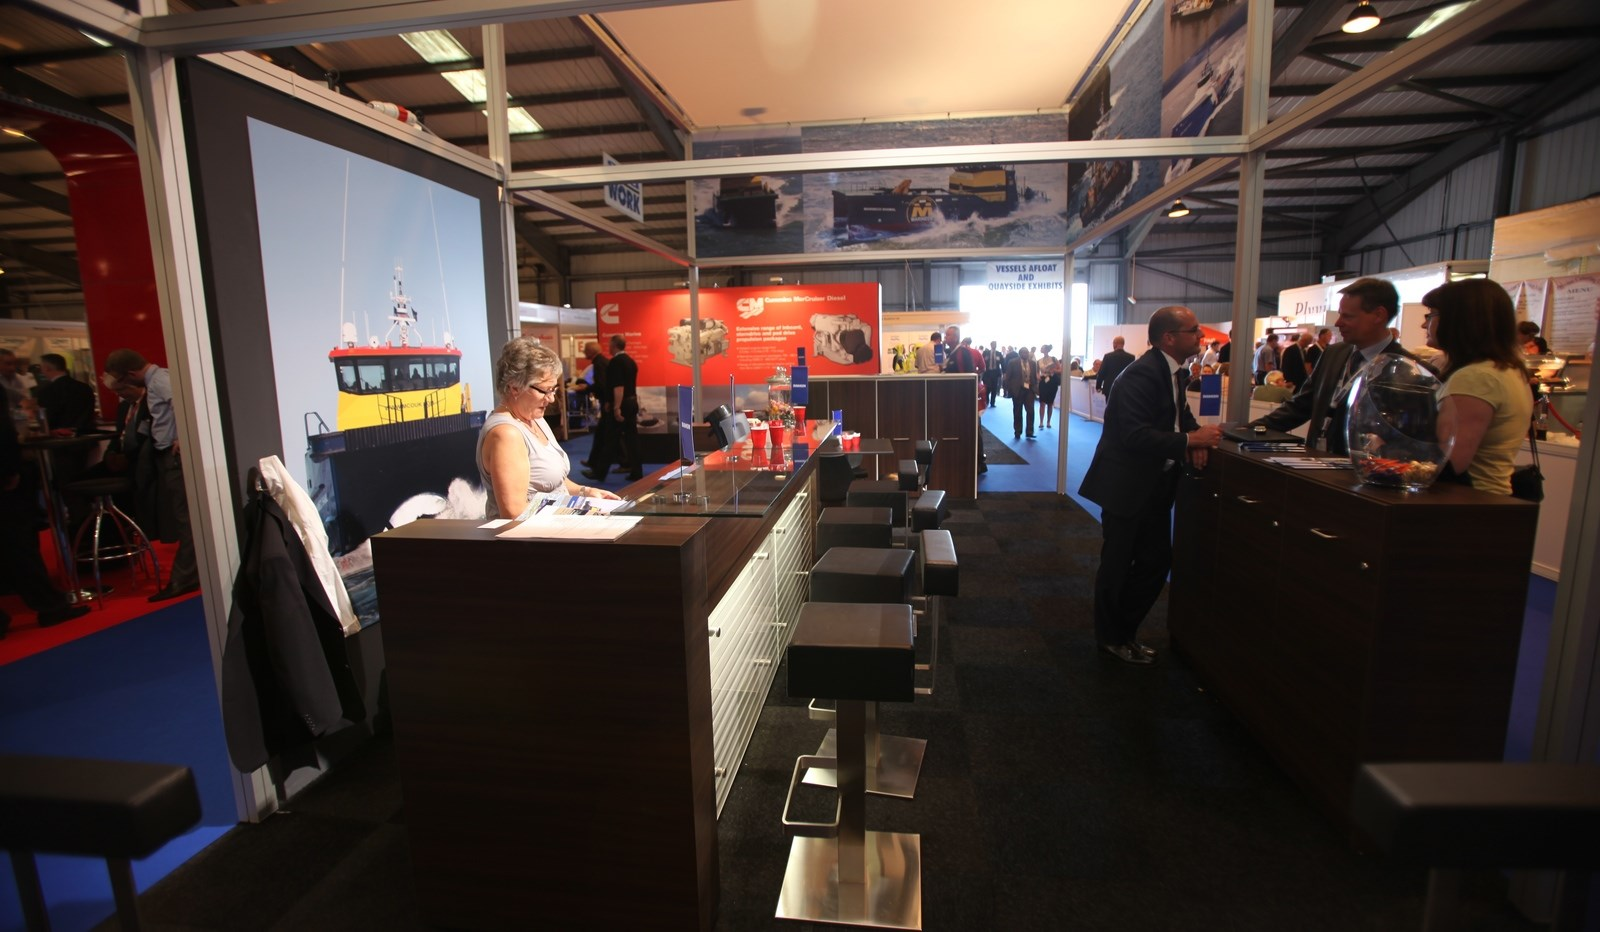 Seawork 2011 was busy as ever, especially on Wednesday the 15th of June there were many visitors.